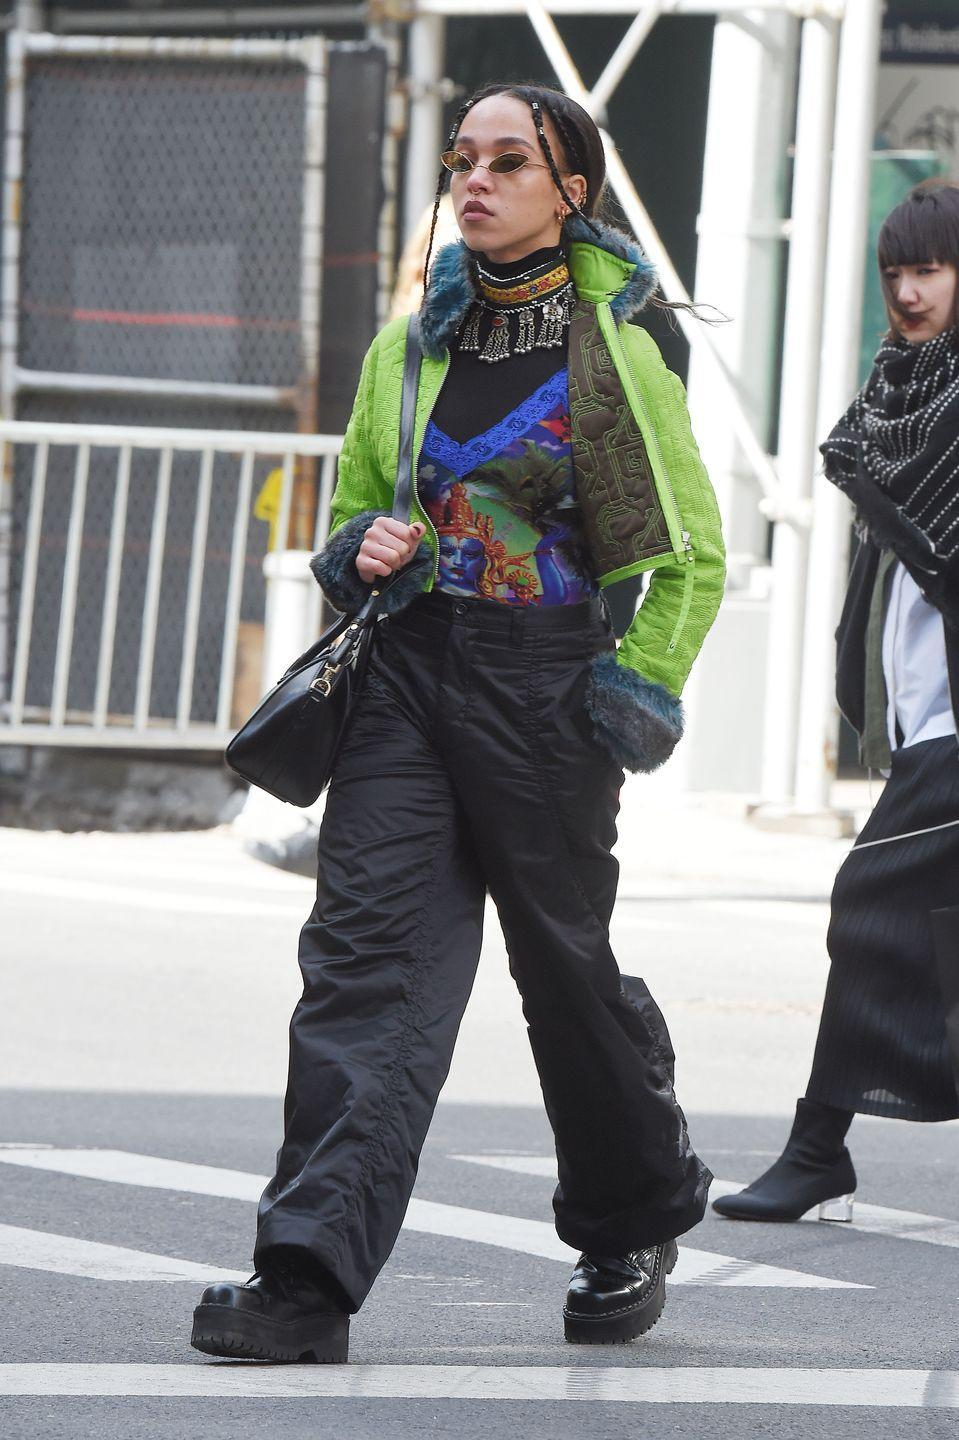 <p>I was today years old when I found out FKA Twigs invented layering. The singer serves a masterclass in winter style with her vintage-cool style. A choker layered <em>over </em>a turtleneck? Ya, I need to try that. <br><br></p>